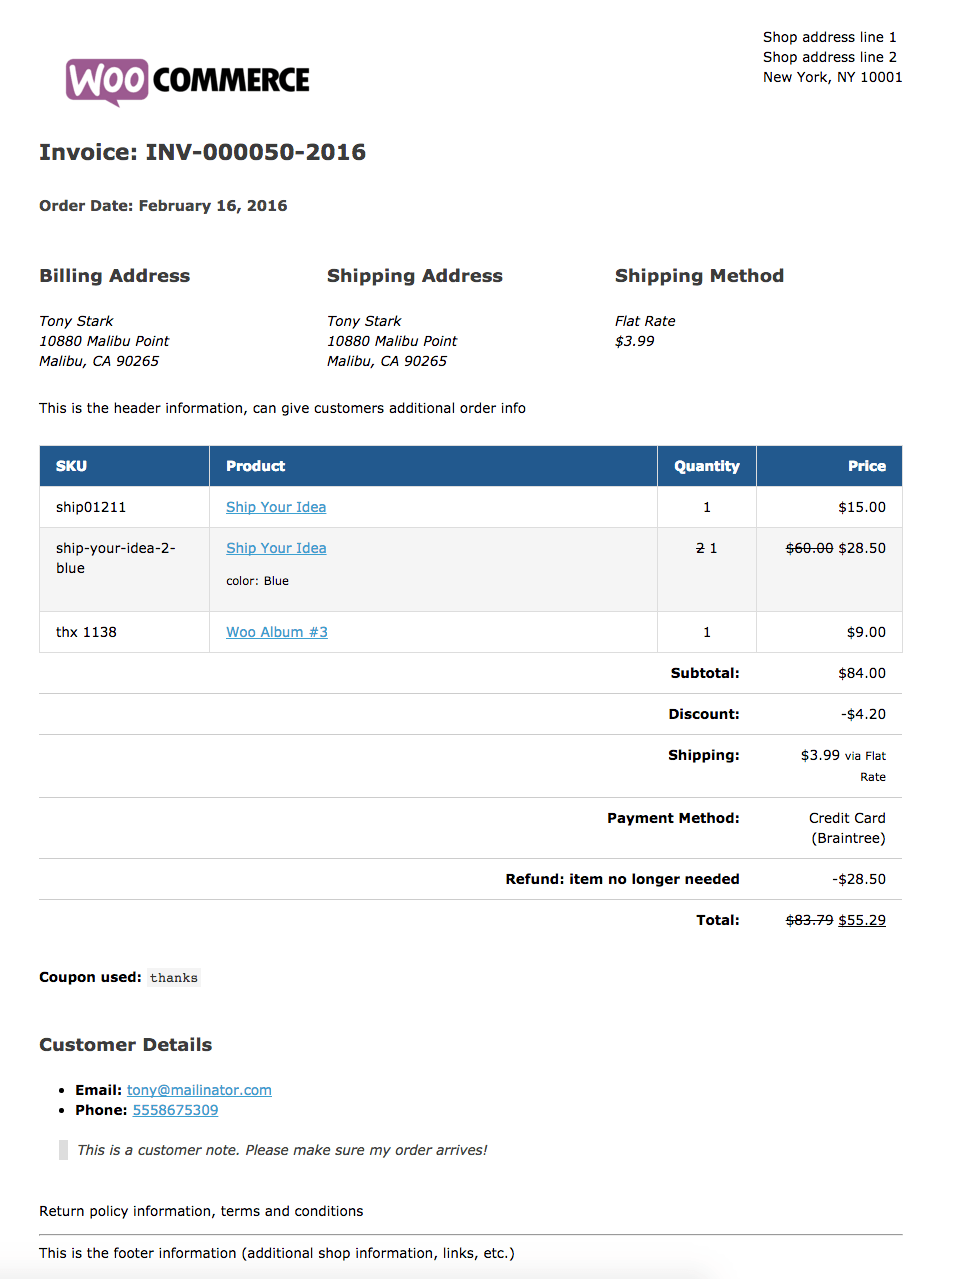 Floobydustus  Splendid Print Invoices Amp Packing Lists  Woocommerce With Entrancing View A Sample Invoice  With Agreeable Invoice App Also Free Invoice In Addition Invoice Asap And Invoice Number As Well As Canada Customs Invoice Additionally Square Invoice From Woocommercecom With Floobydustus  Entrancing Print Invoices Amp Packing Lists  Woocommerce With Agreeable View A Sample Invoice  And Splendid Invoice App Also Free Invoice In Addition Invoice Asap From Woocommercecom